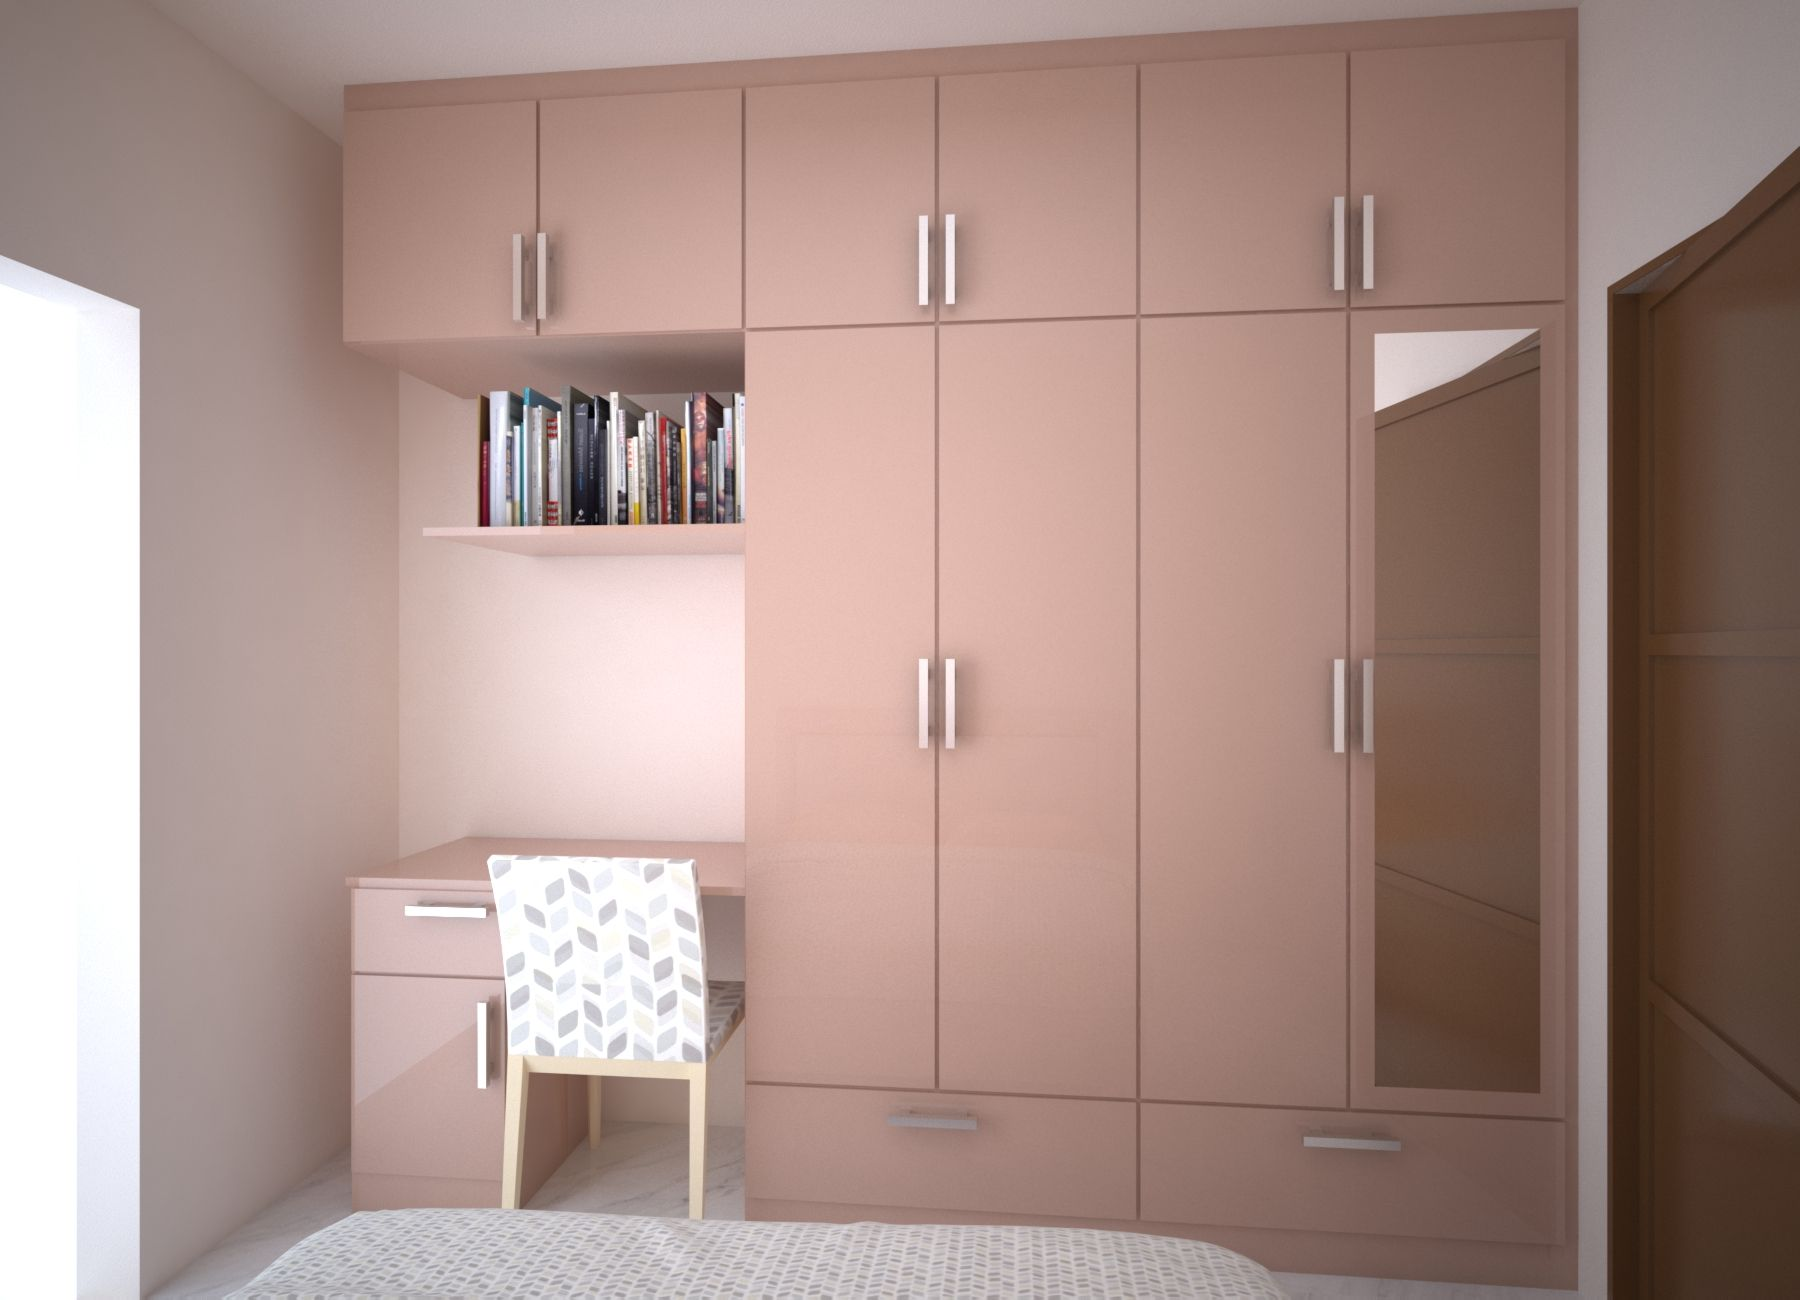 Residential Commercial Space Design Bedroom Closet Design Wardrobe Design Bedroom Cupboard Design